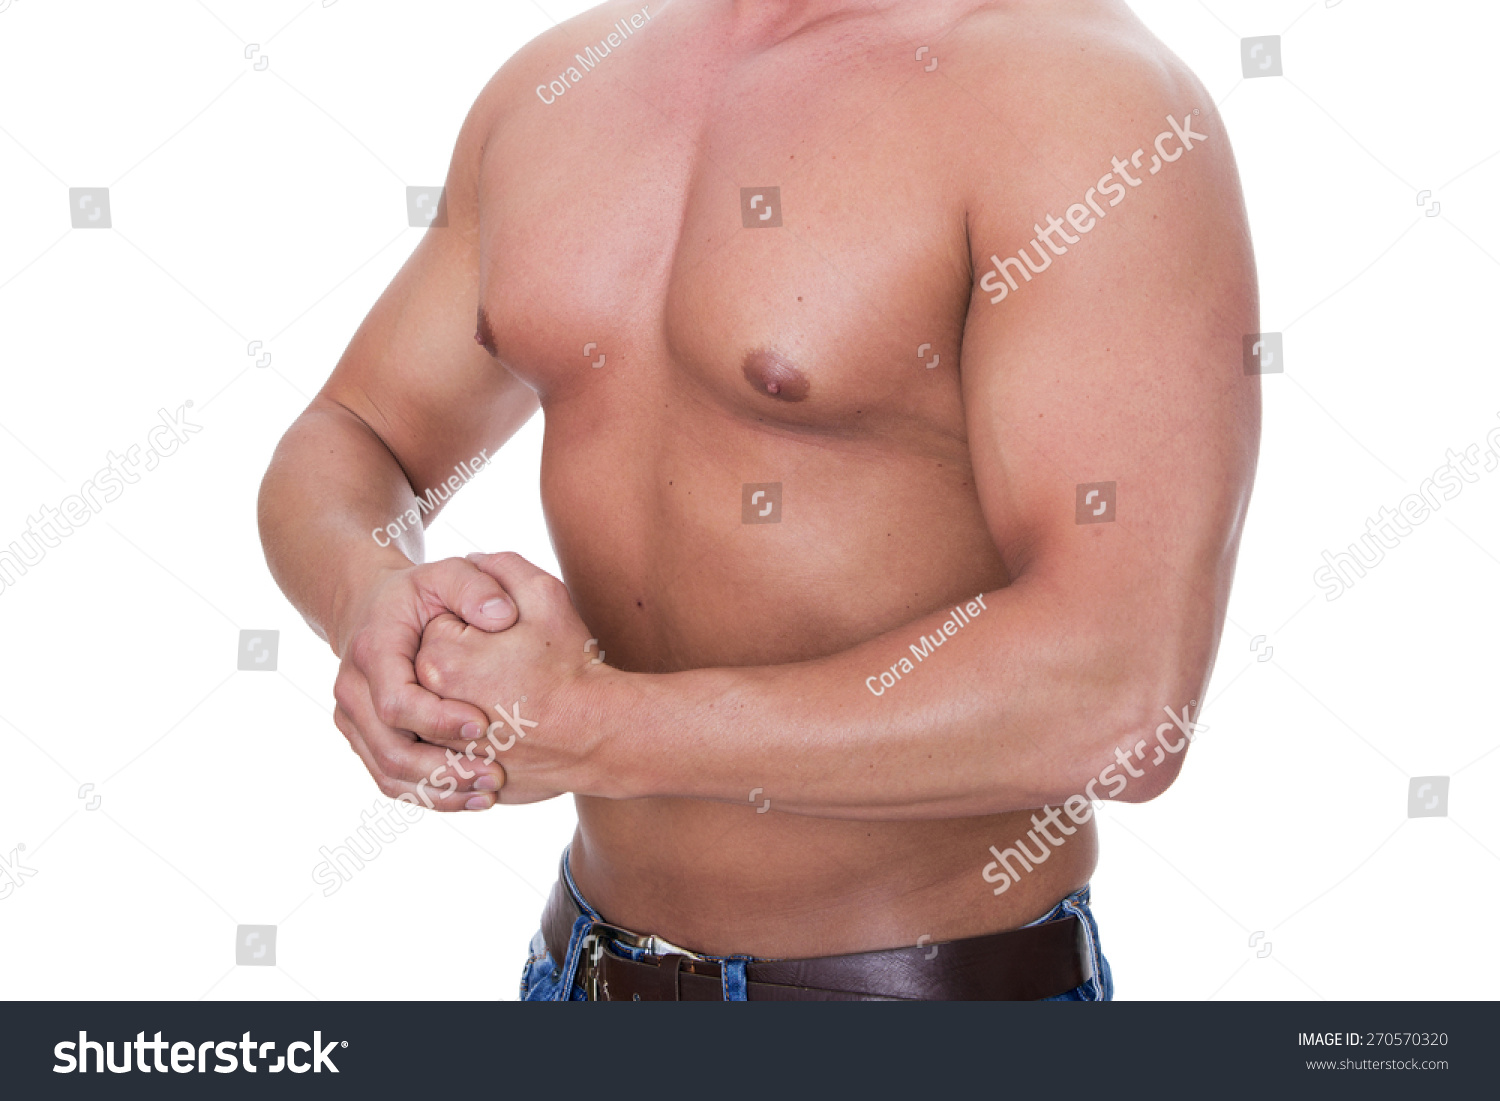 Upper Body Muscular Slim Young Man Stock Photo Edit Now 270570320